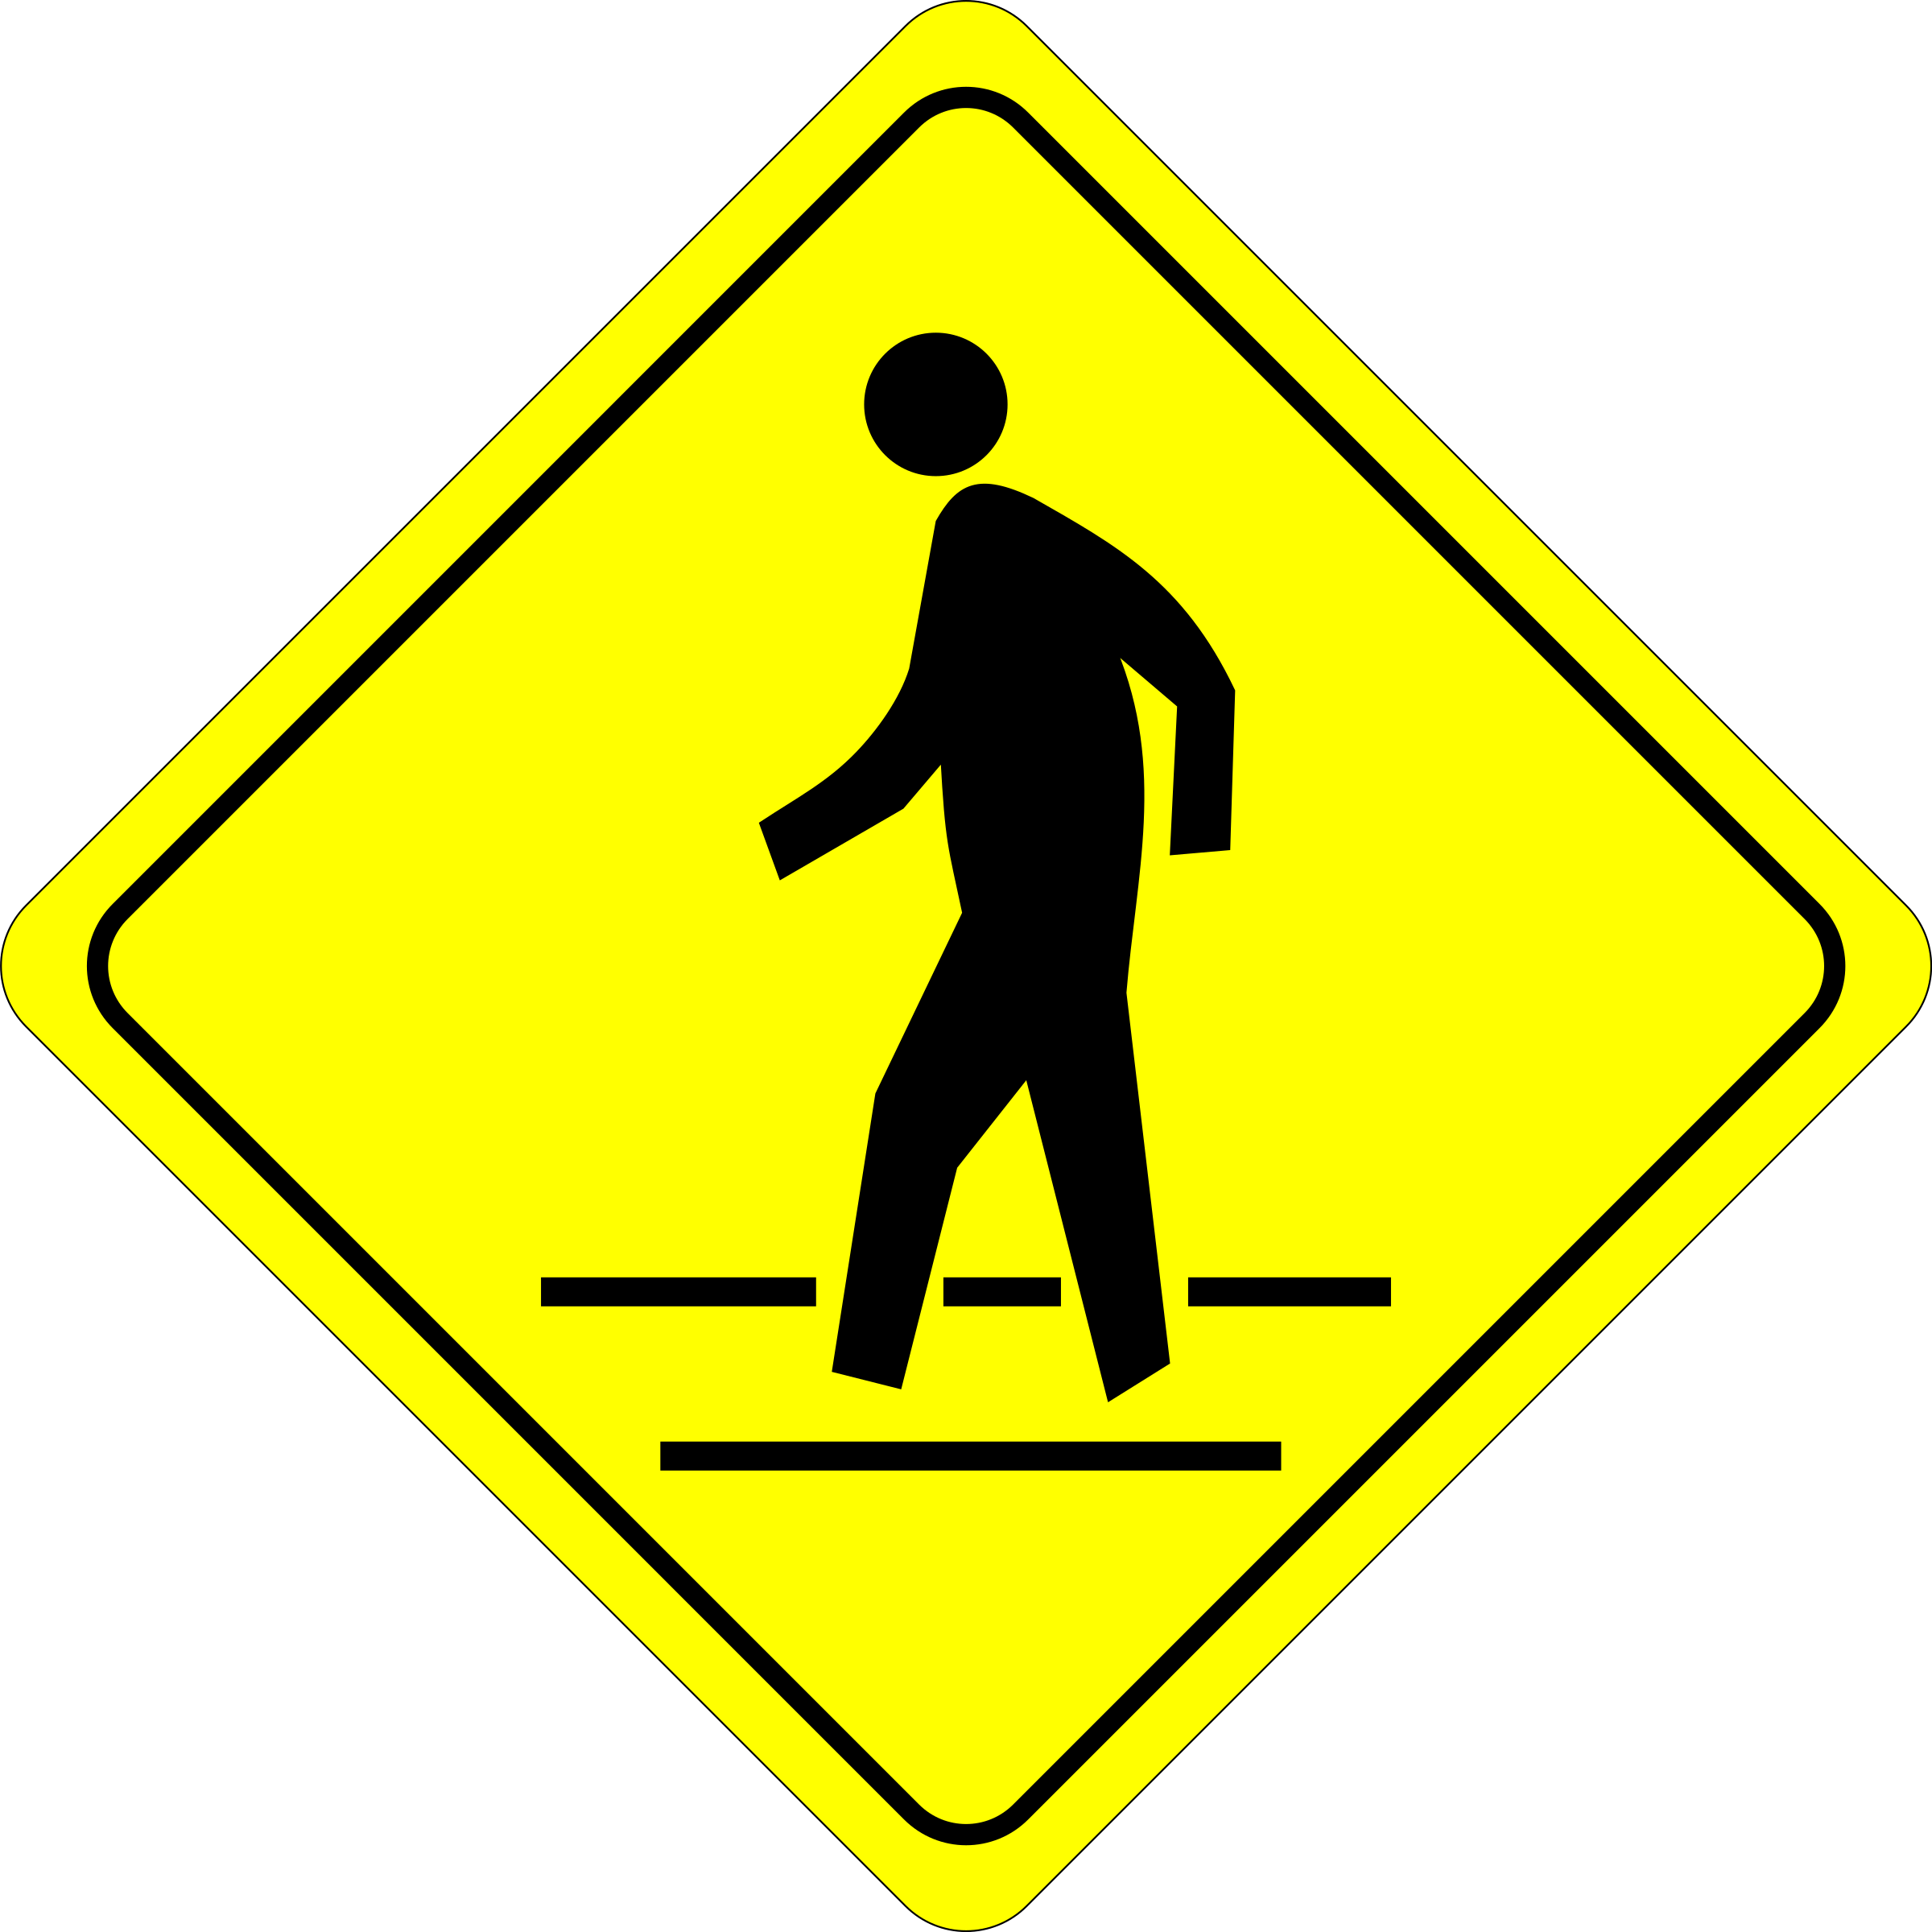 Caution - Pedestrian Crossing by algotruneman